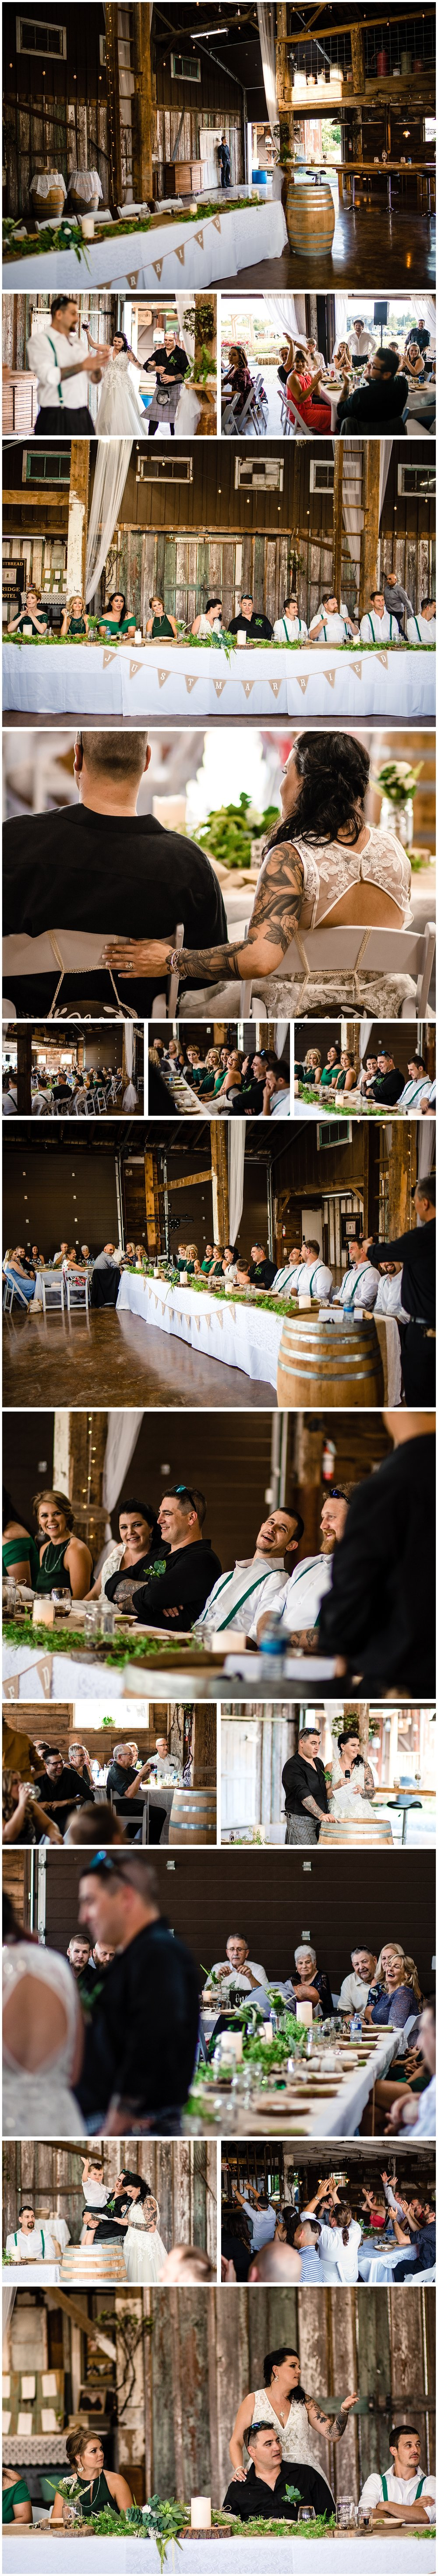 White-Owl-Barn-langley-bc-wedding-photographer-rustic-bbq-foodtruck-scottish-emerald-green-drinks_0007.jpg